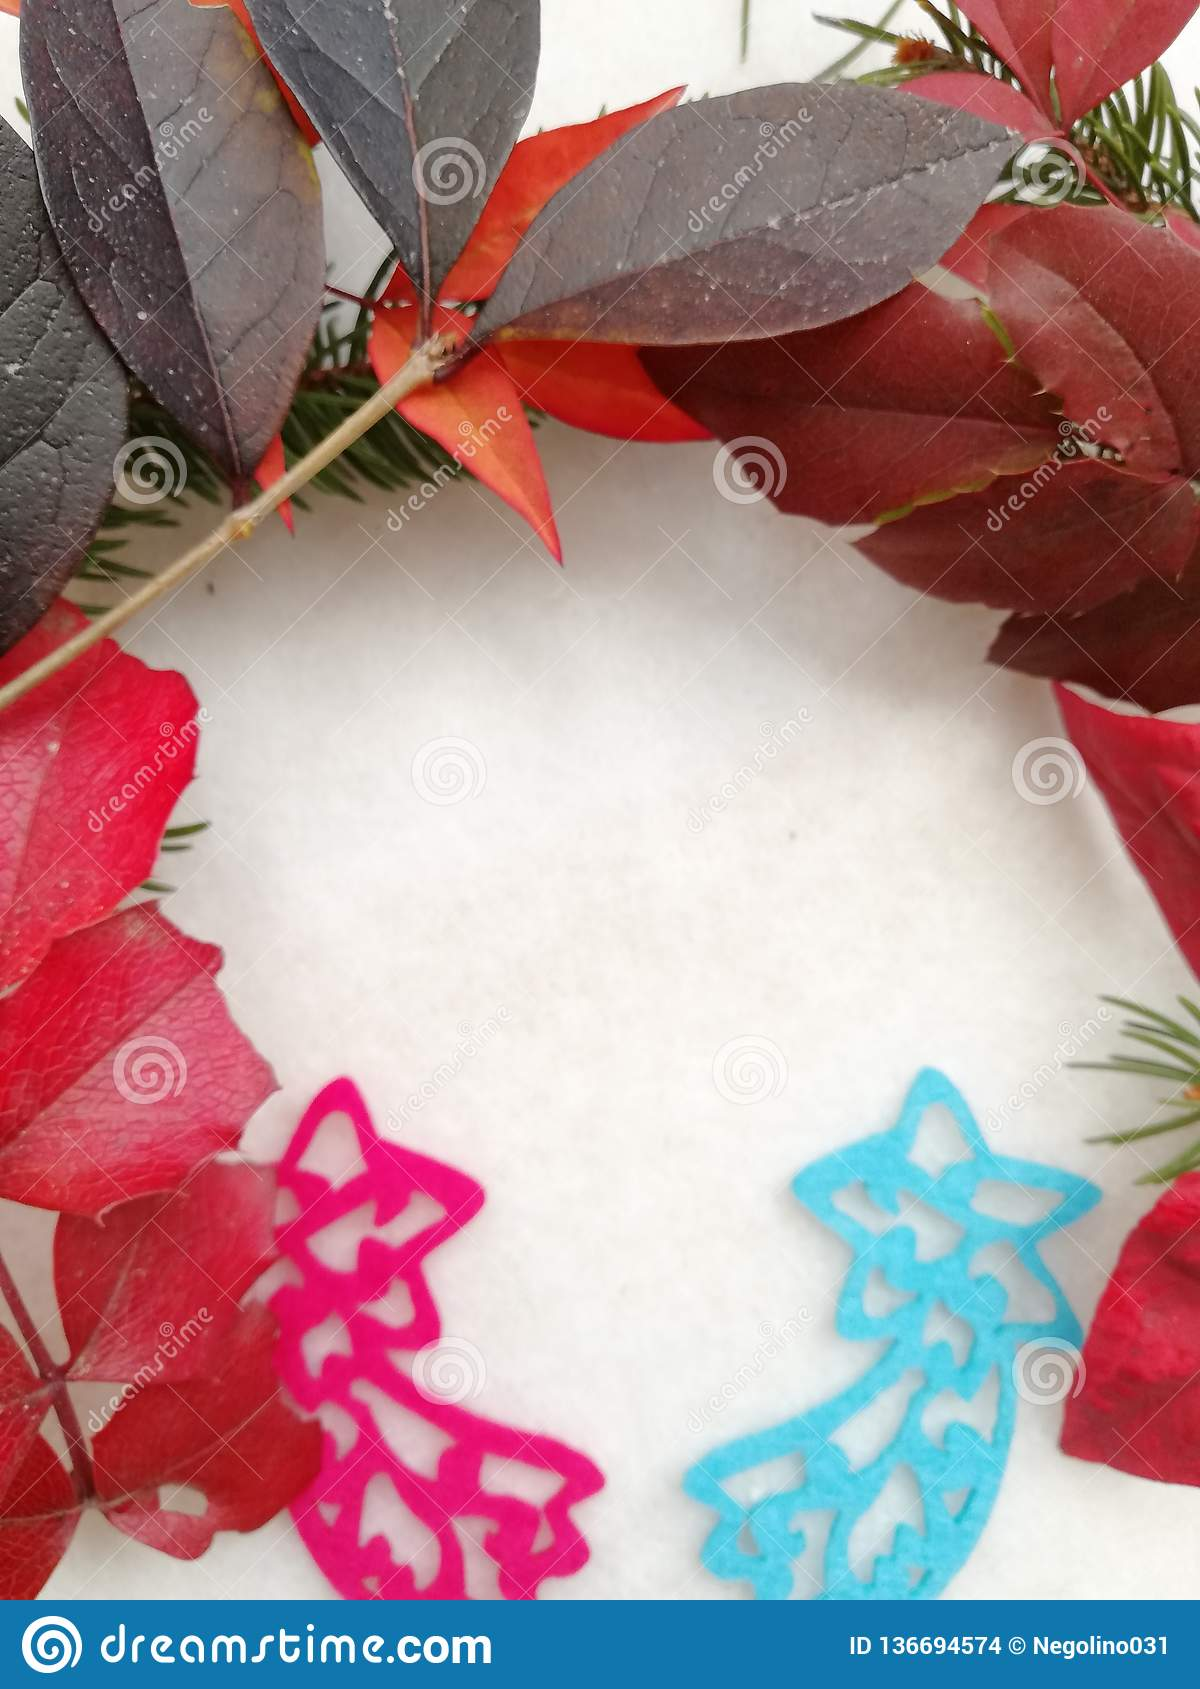 Auguri Di Buon Natale We Wish You A Merry Christmas.Elegant Greeting Card For Winter Holiday Stock Photo Image